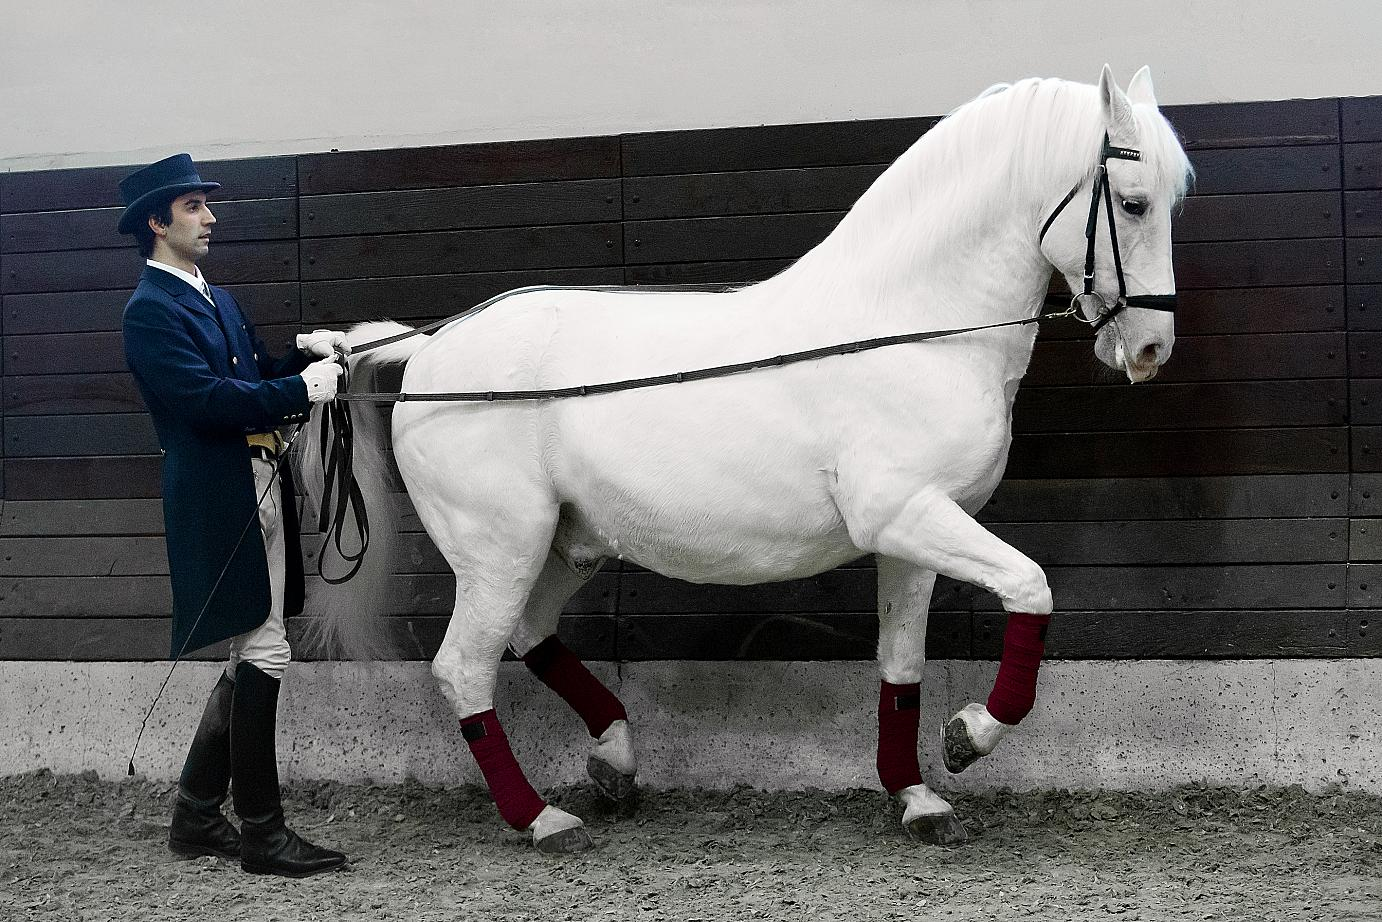 A Lipizzaner groomed to perfection and trained to excel. Photo credit: Ewald Willibald.